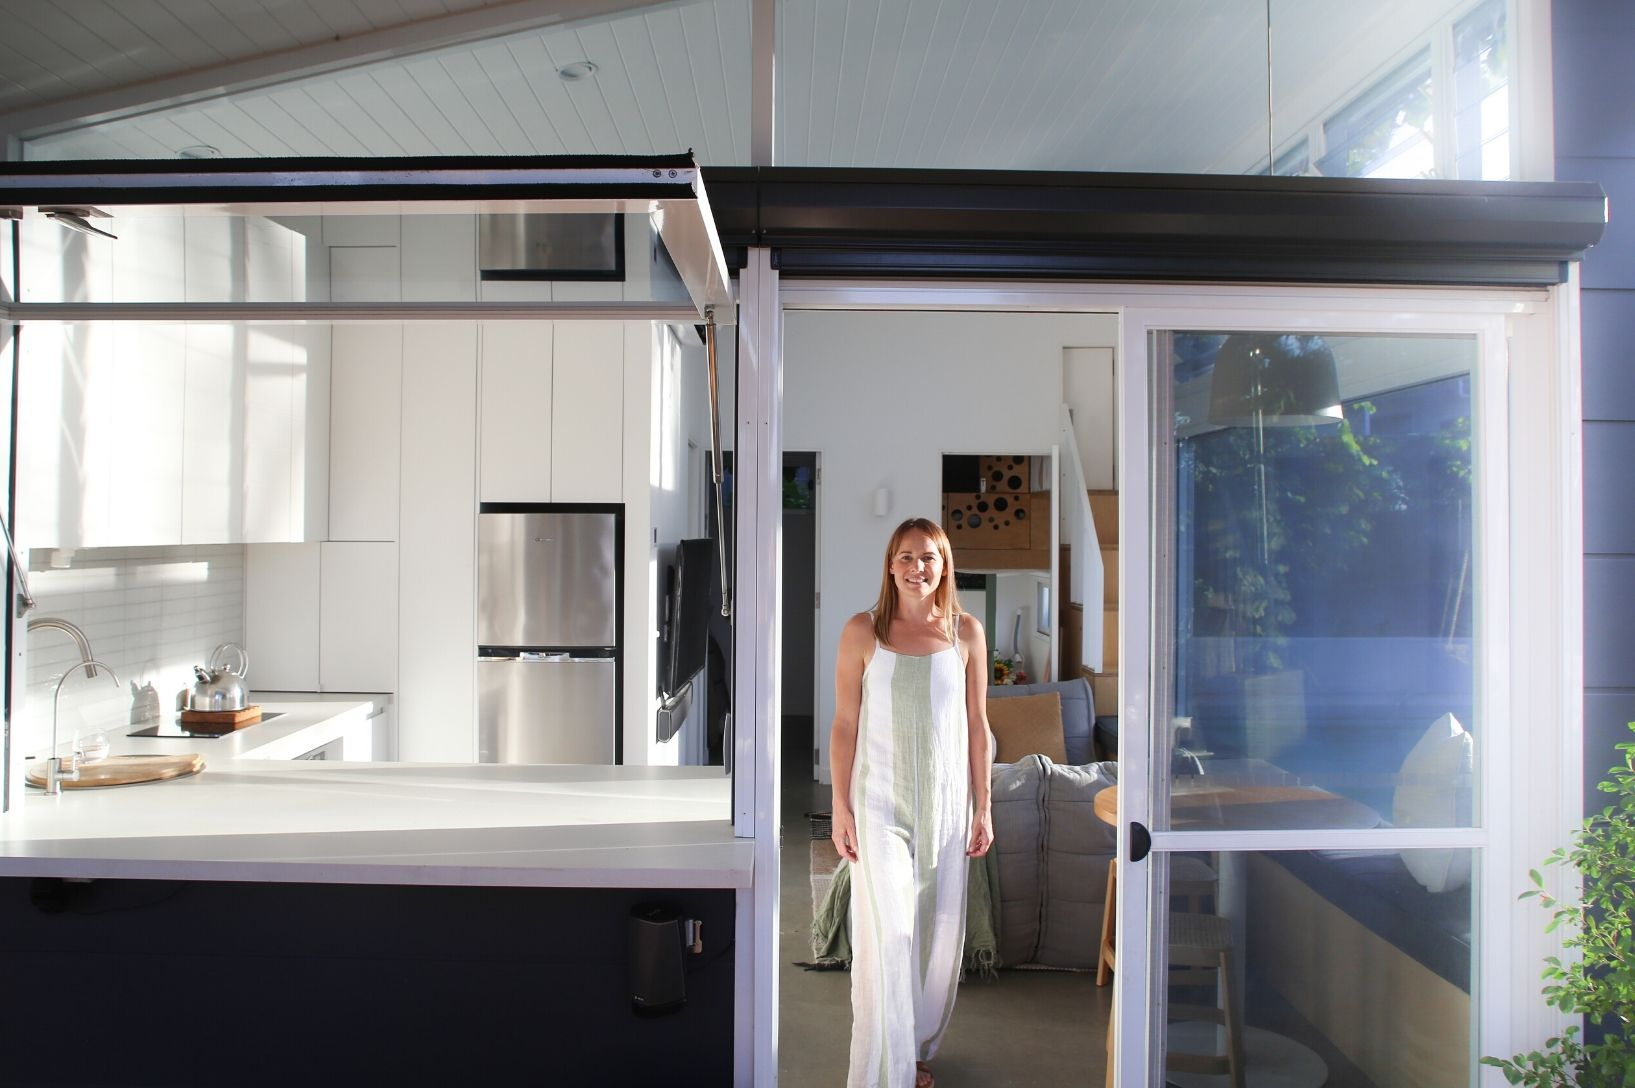 From climbing the corporate ladder to creating a life of less to have more, Meet Marnie Prowse from Tiny Haus.